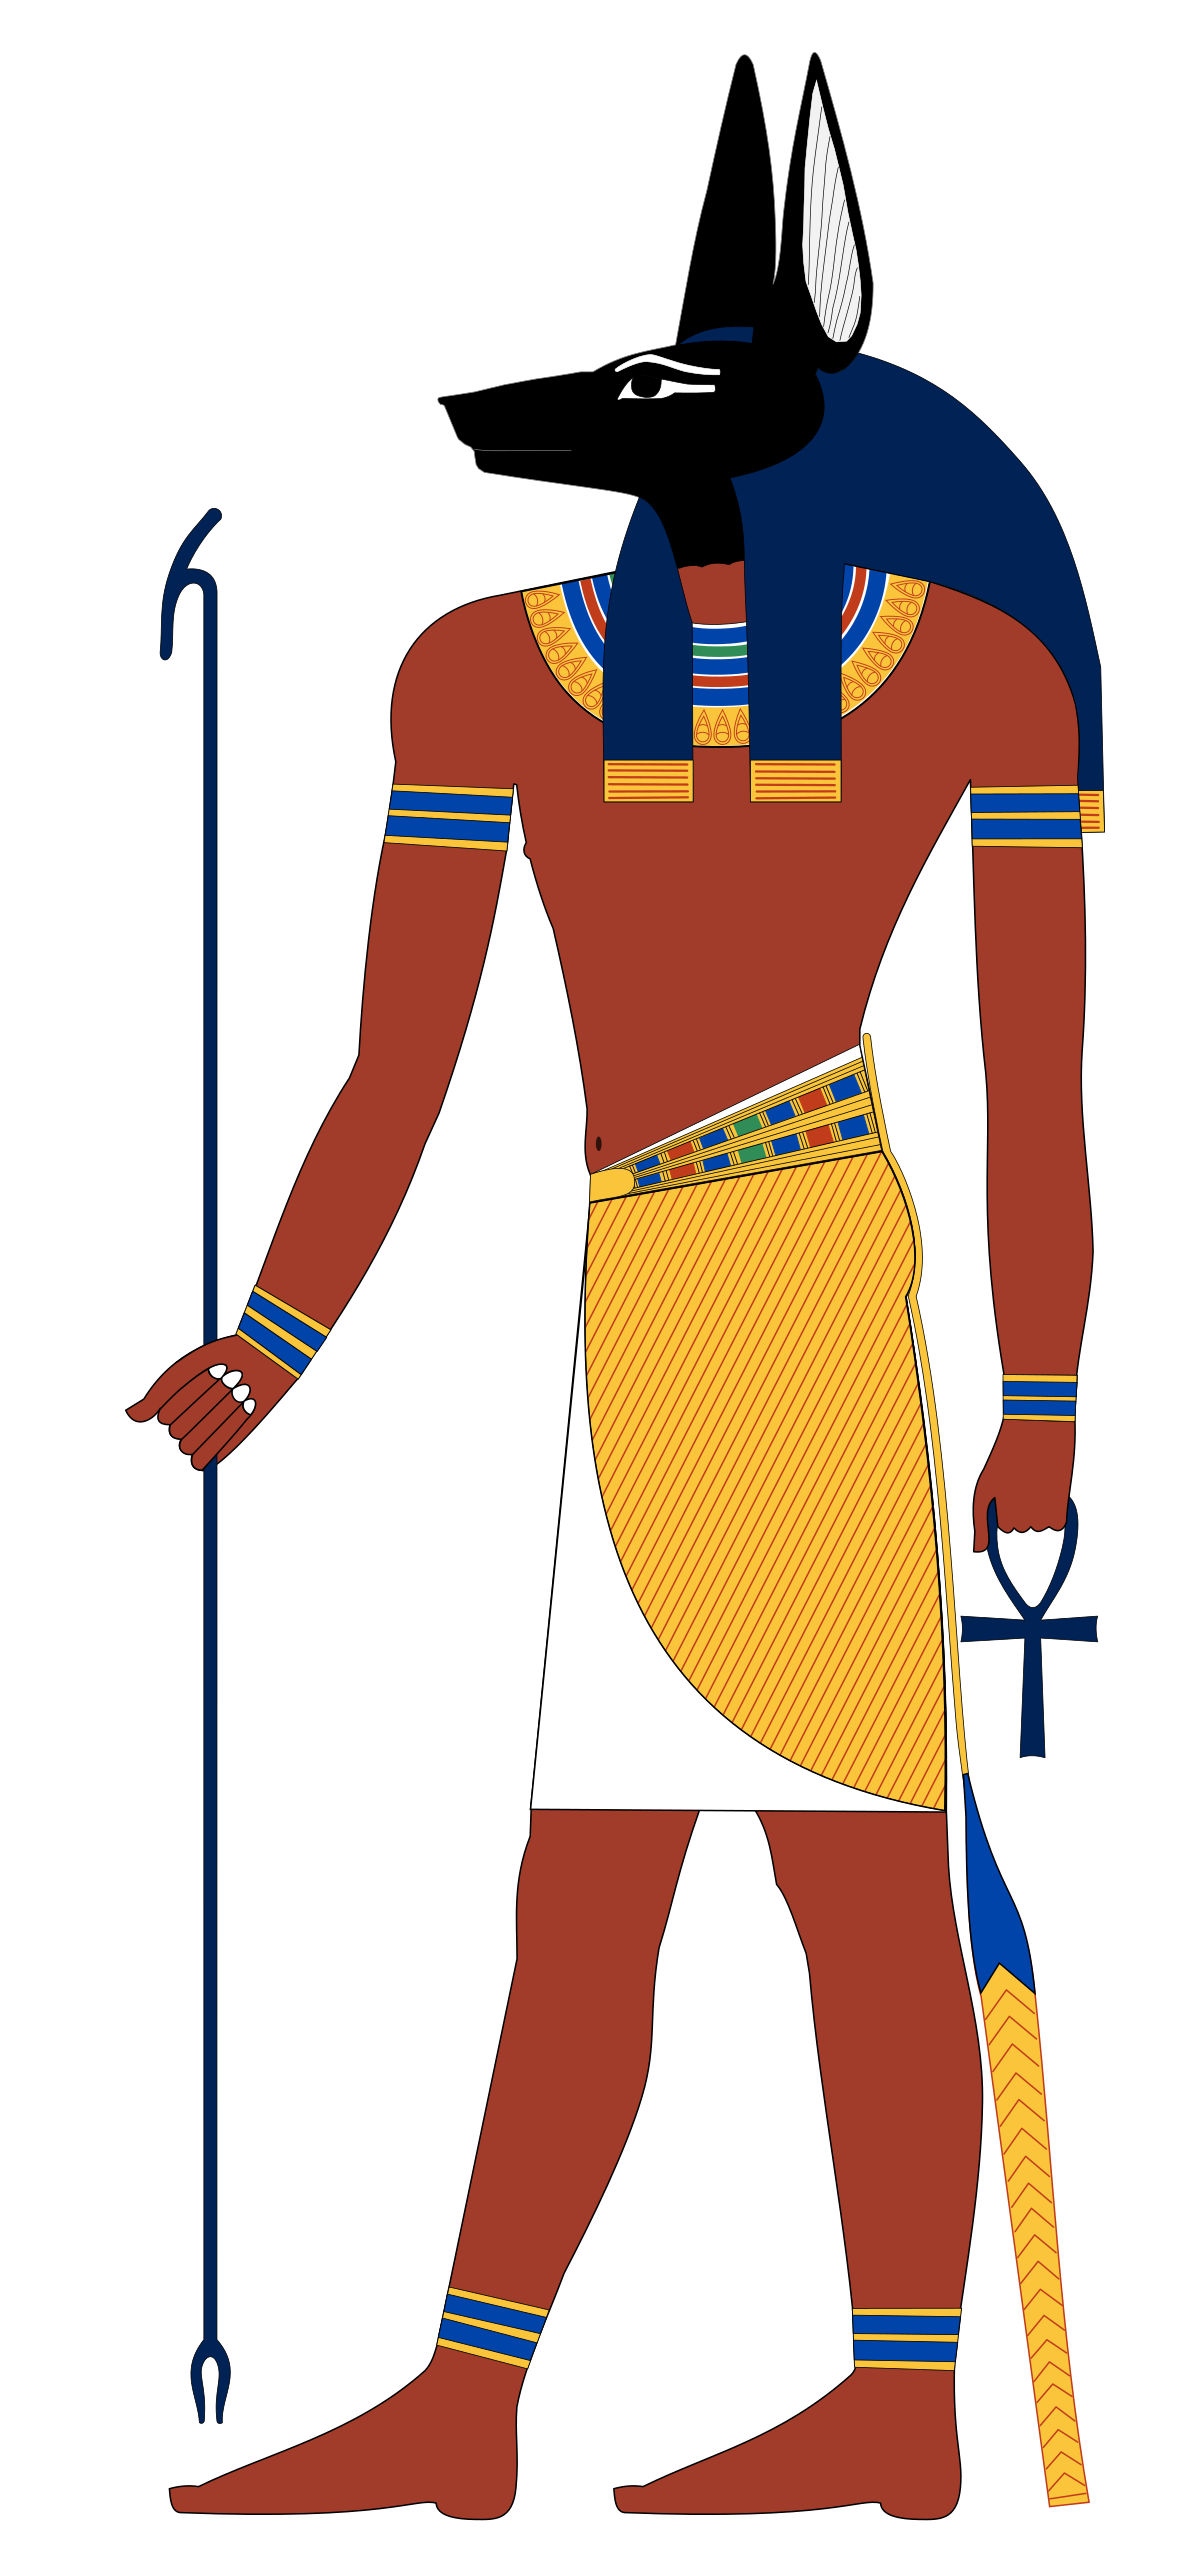 Ancient egypt painting clipart banner black and white stock Anubis - Wikipedia banner black and white stock